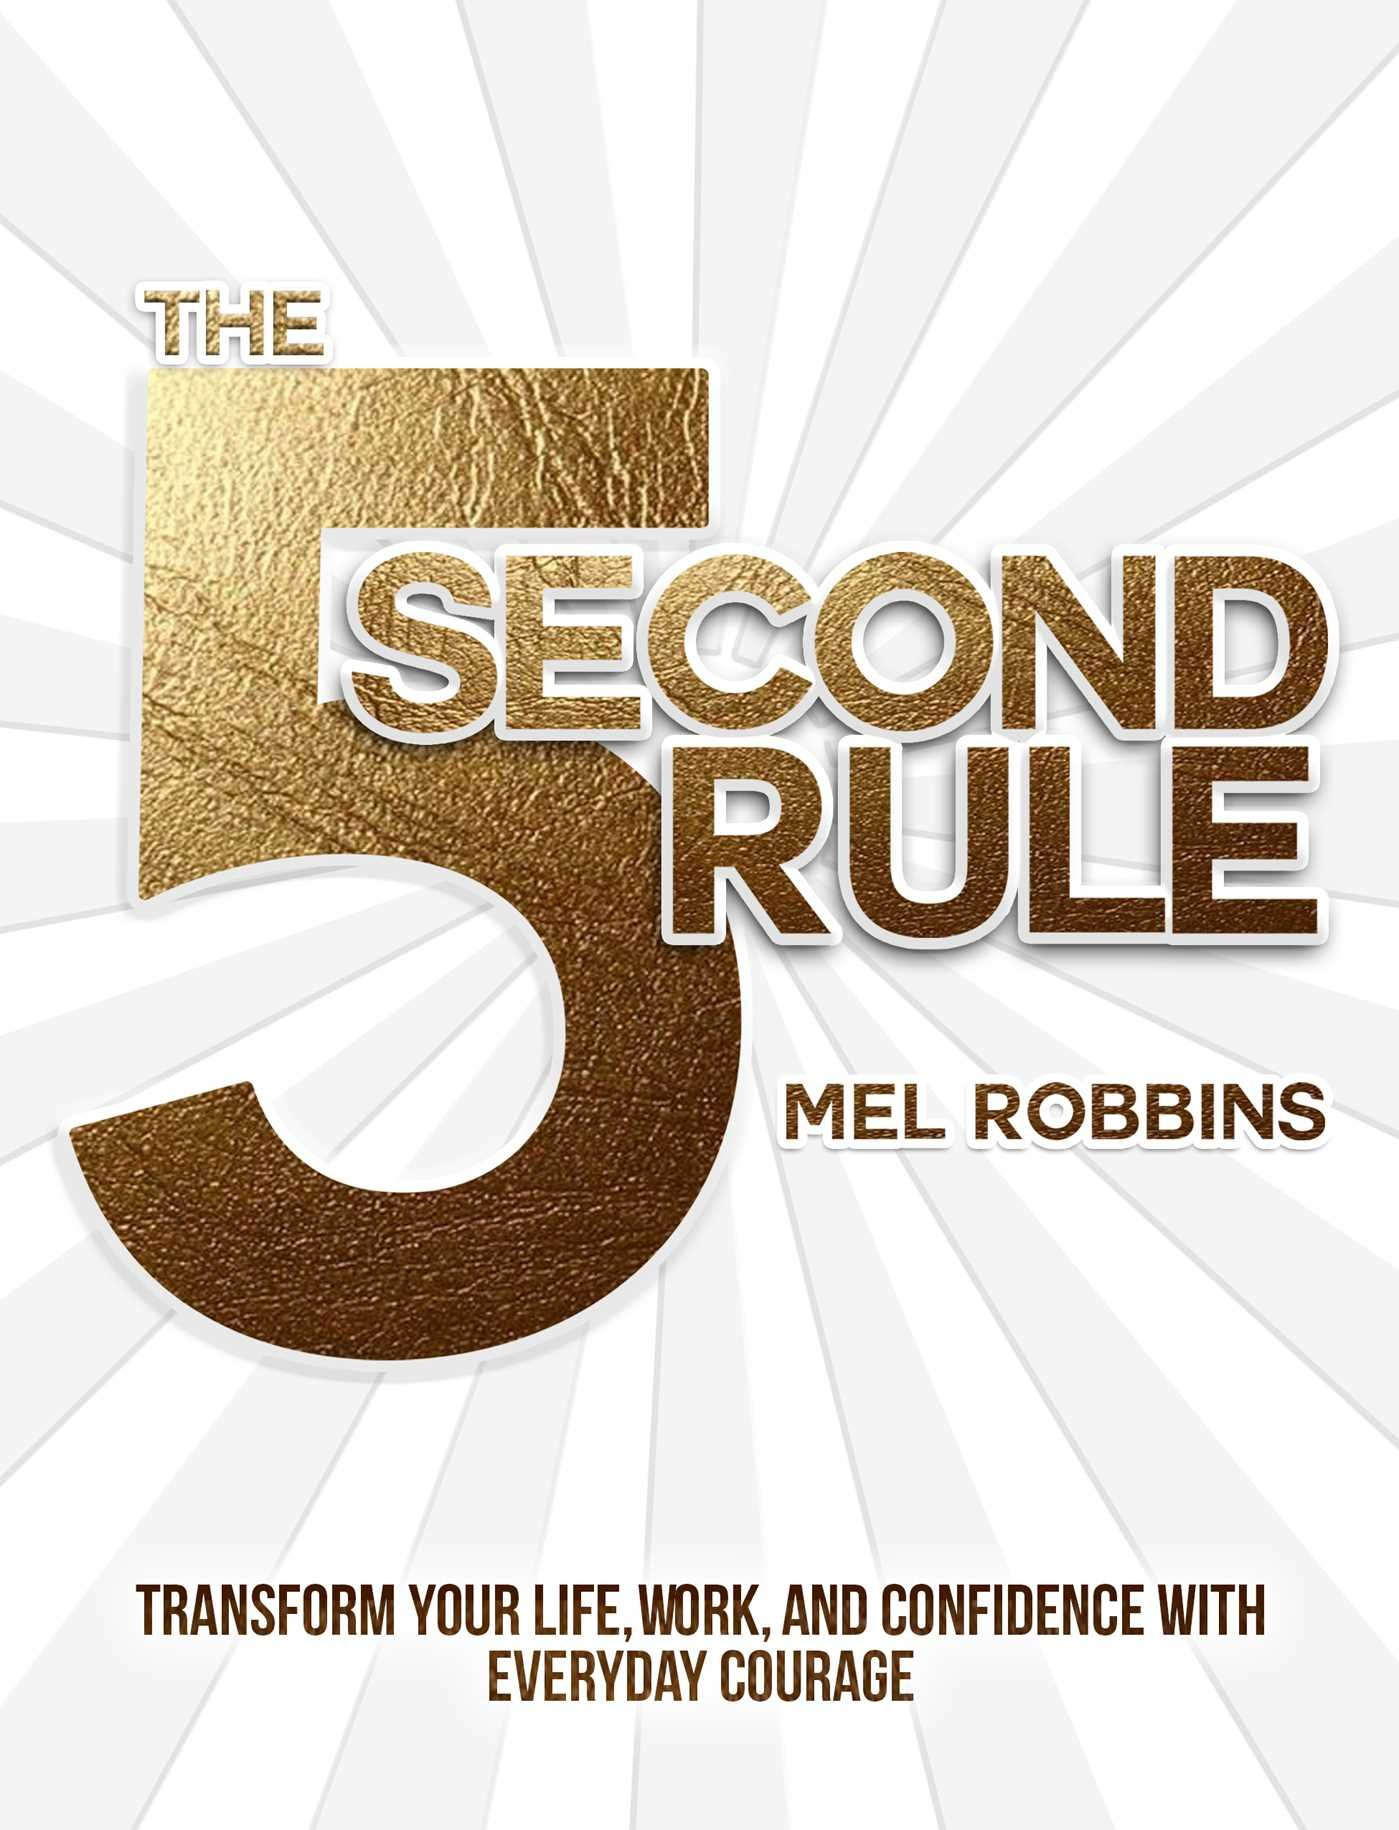 Second Rule Transform Confidence Everyday product image